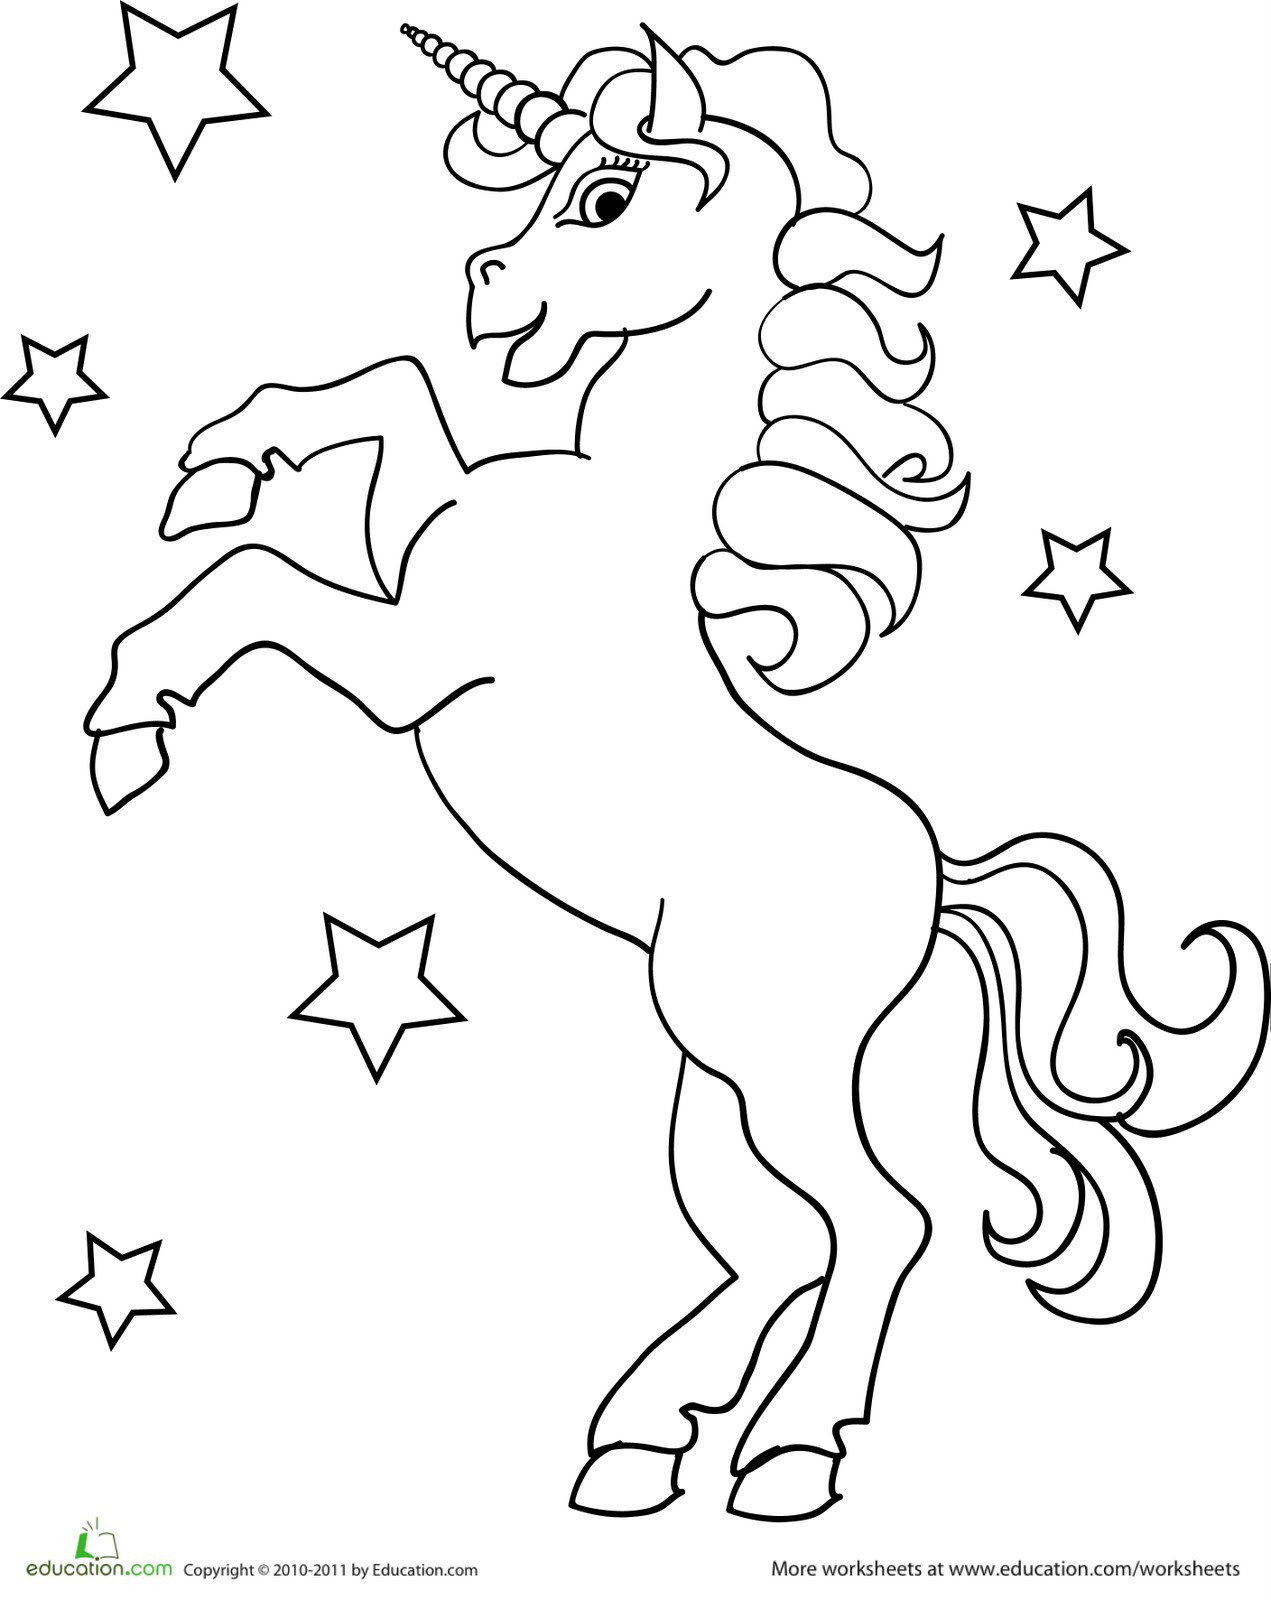 Free Printable Coloring Pages Unicorns  Flying Unicorn Coloring Pages For Kids